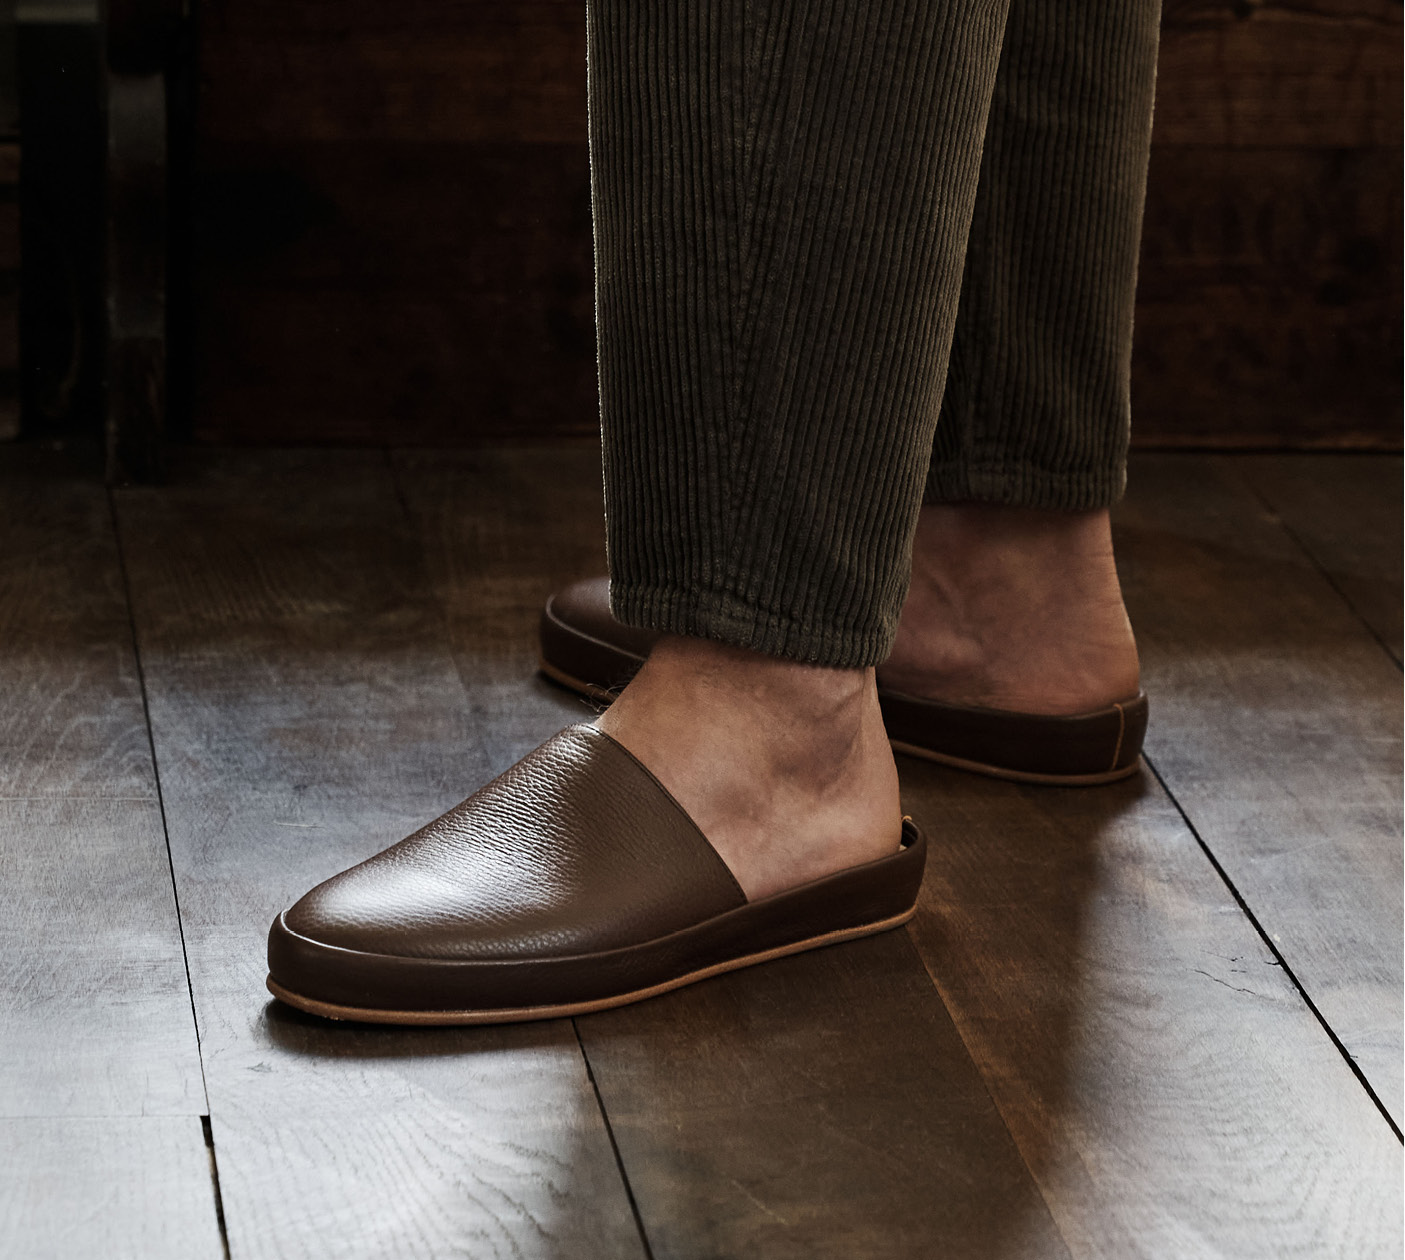 New Mens Slippers - Dark Brown Leather Backless Slippers